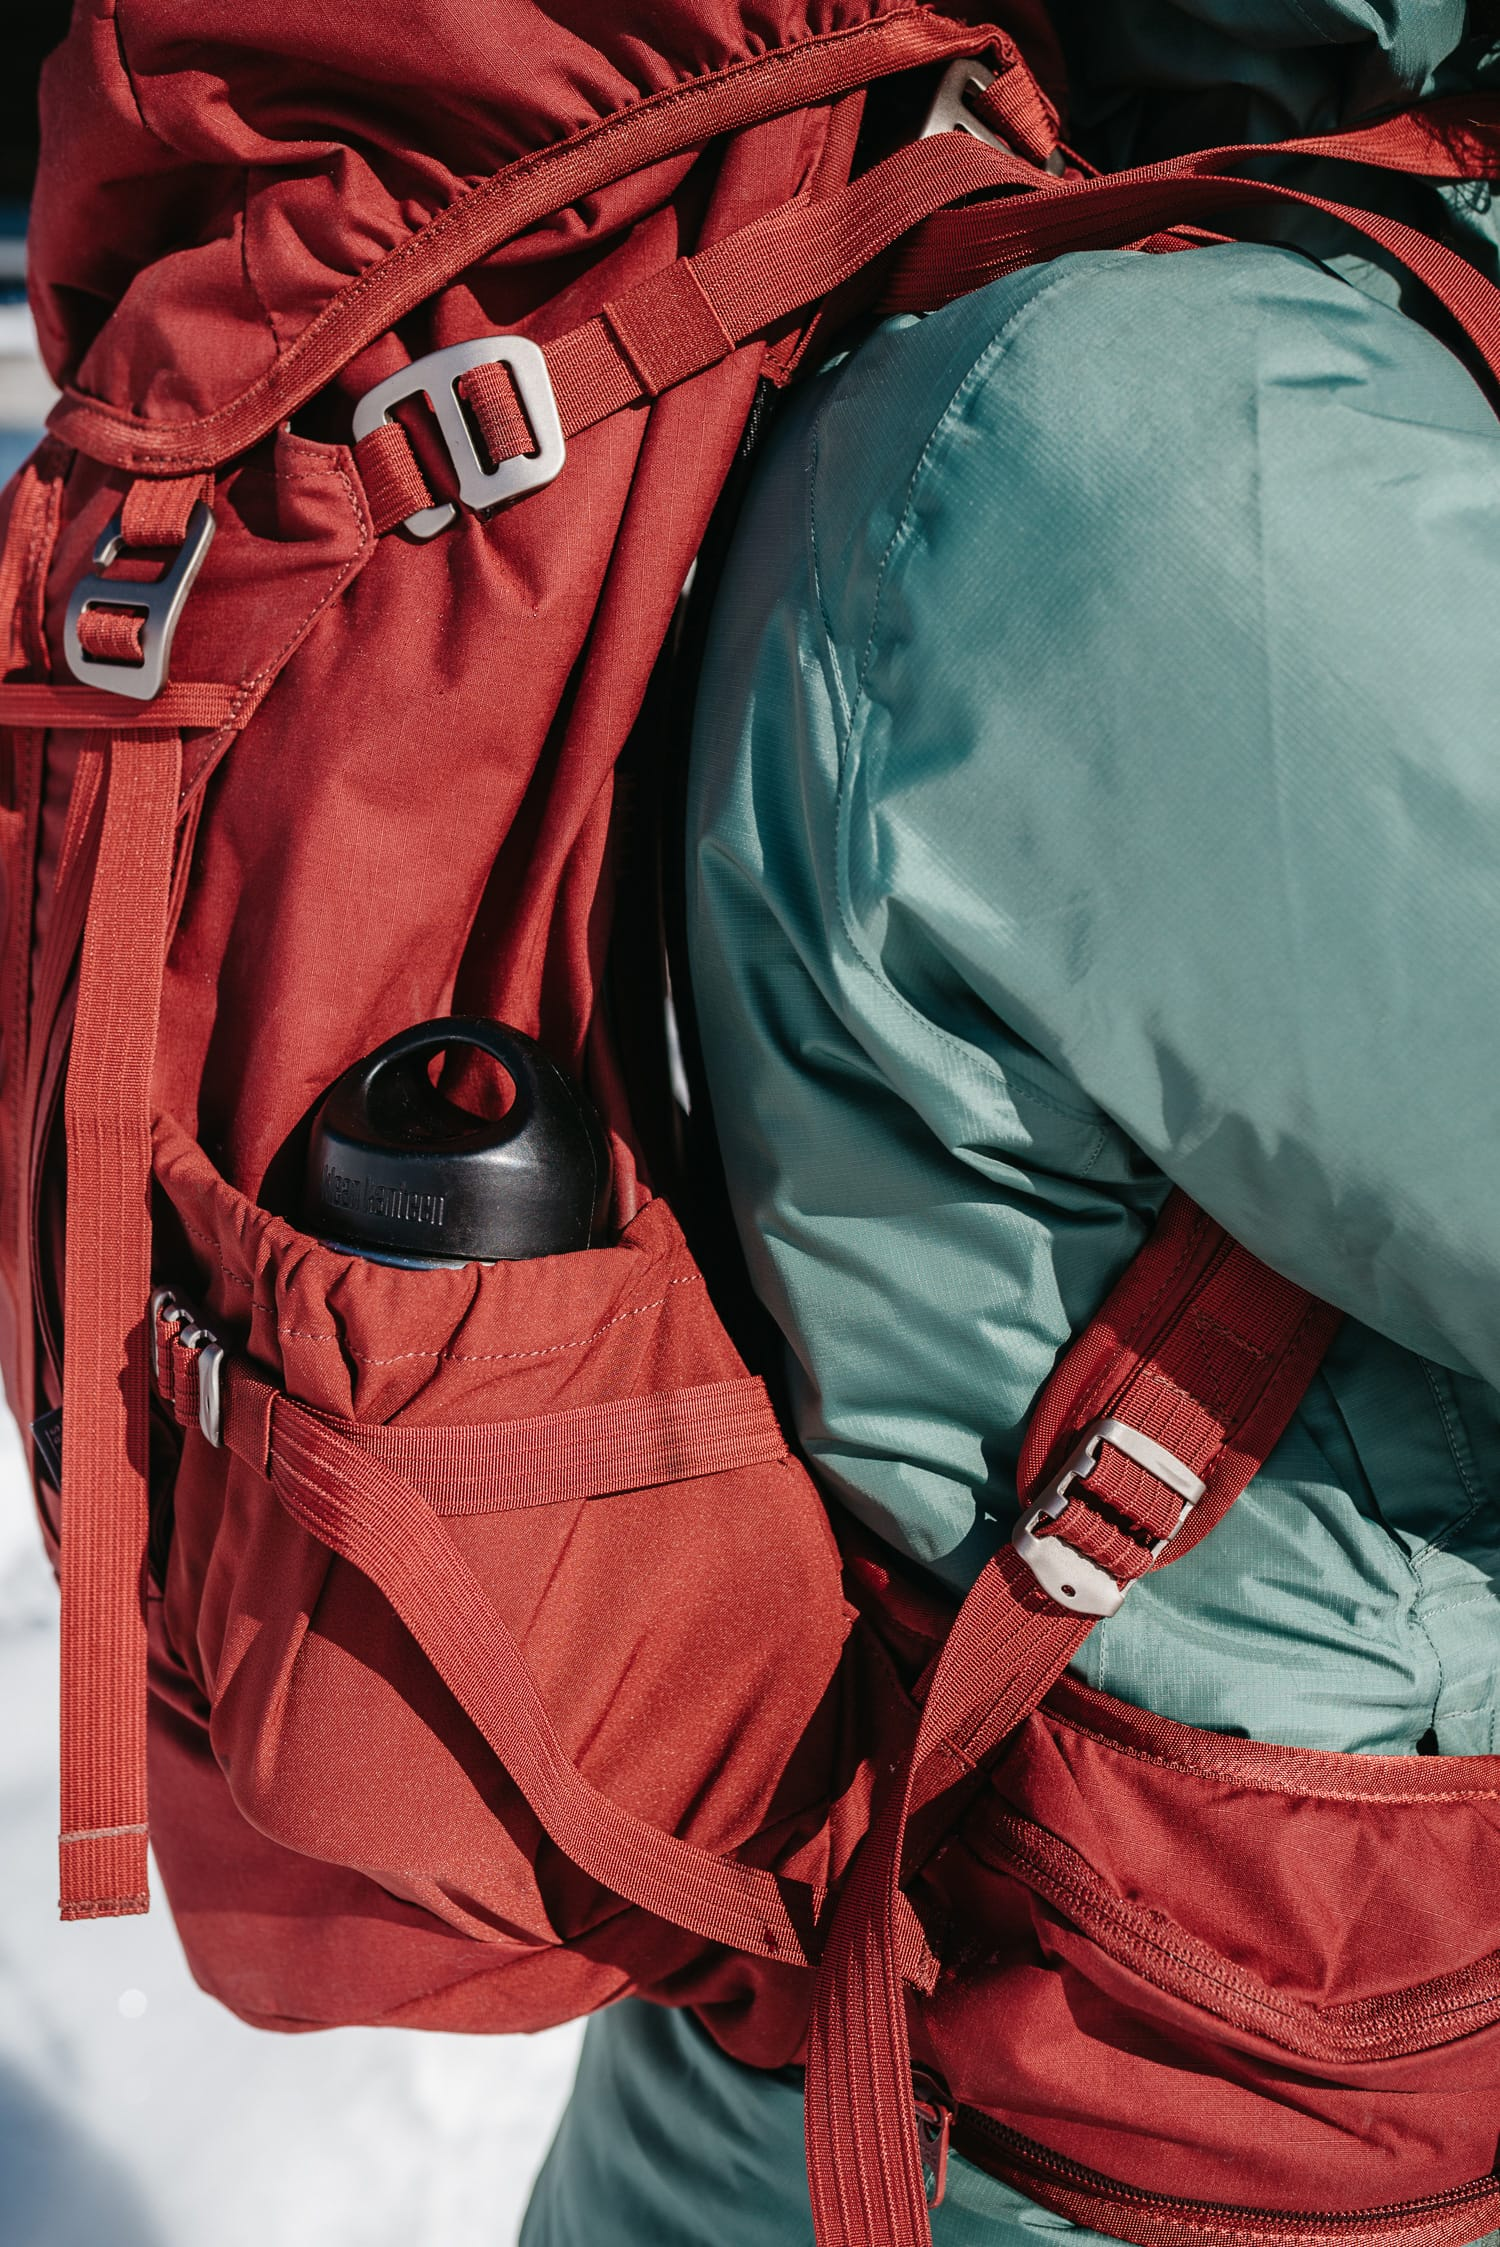 Product review of Lundhags GNEIK 34L by Rania Rönntoft © Northbound | www.northboundjourneys.com